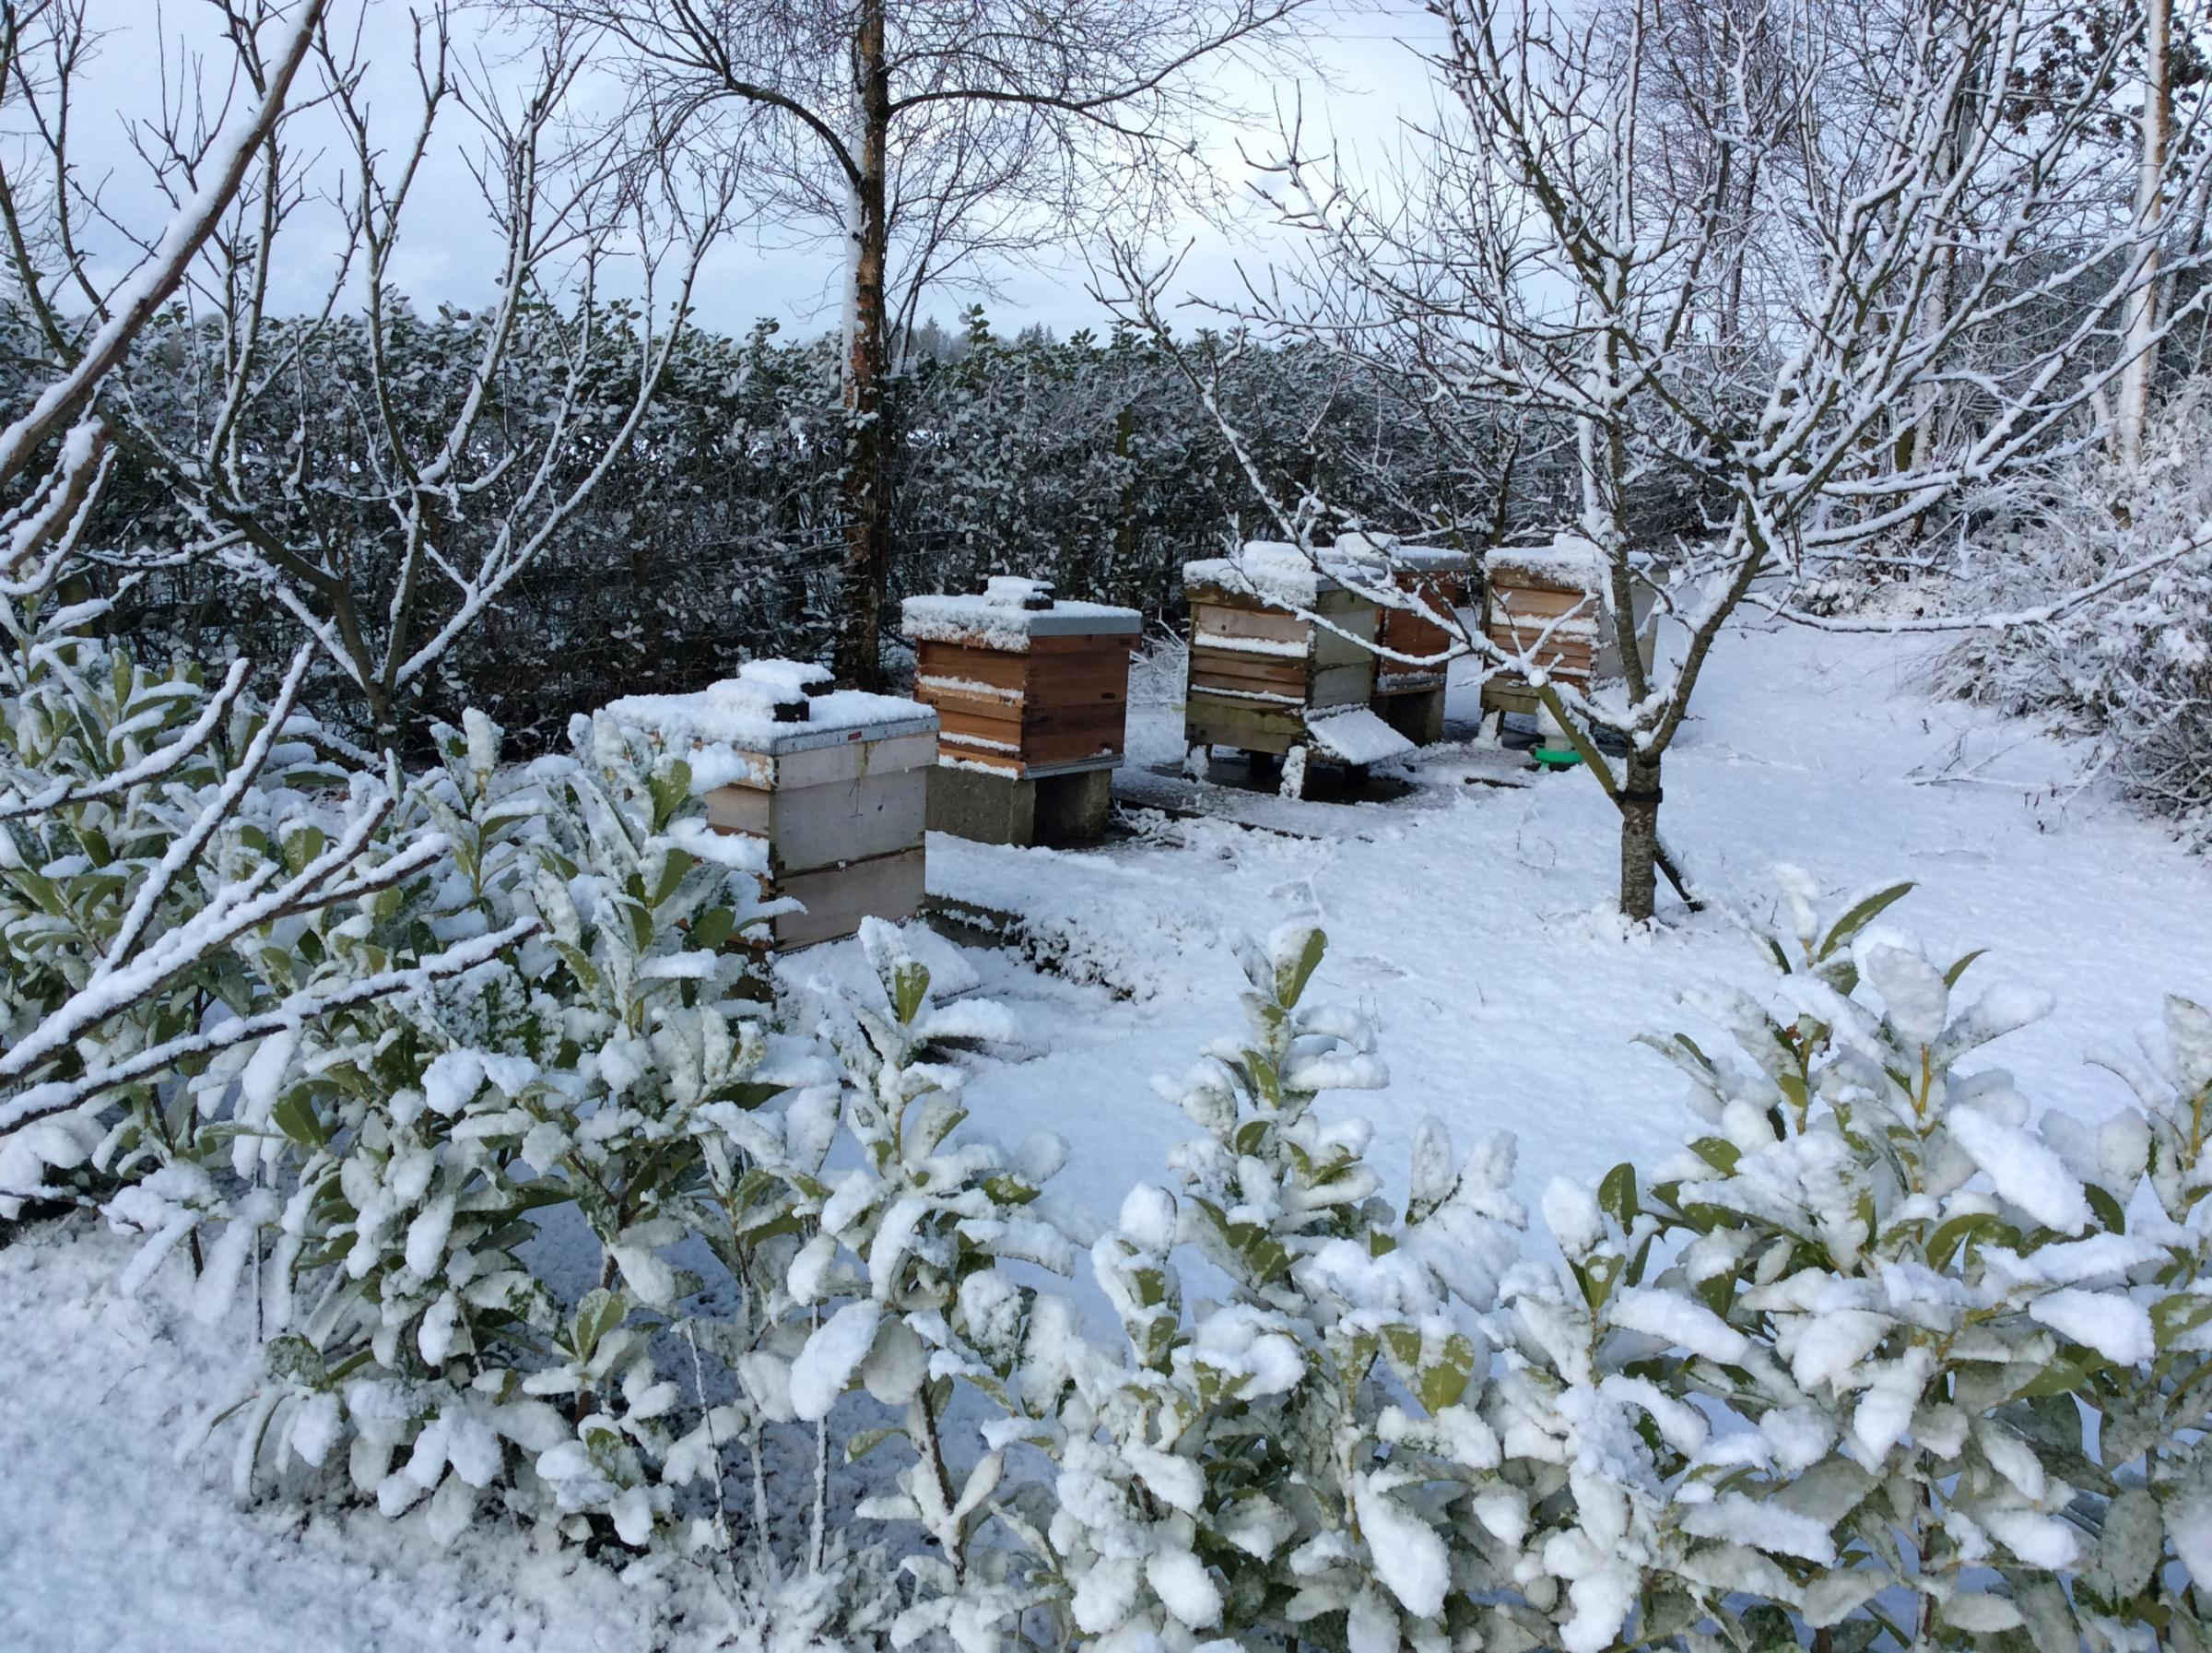 Beehives in the snow at the home of Noel McAlister, Chairman of Fermanagh Beekeepers' Association.